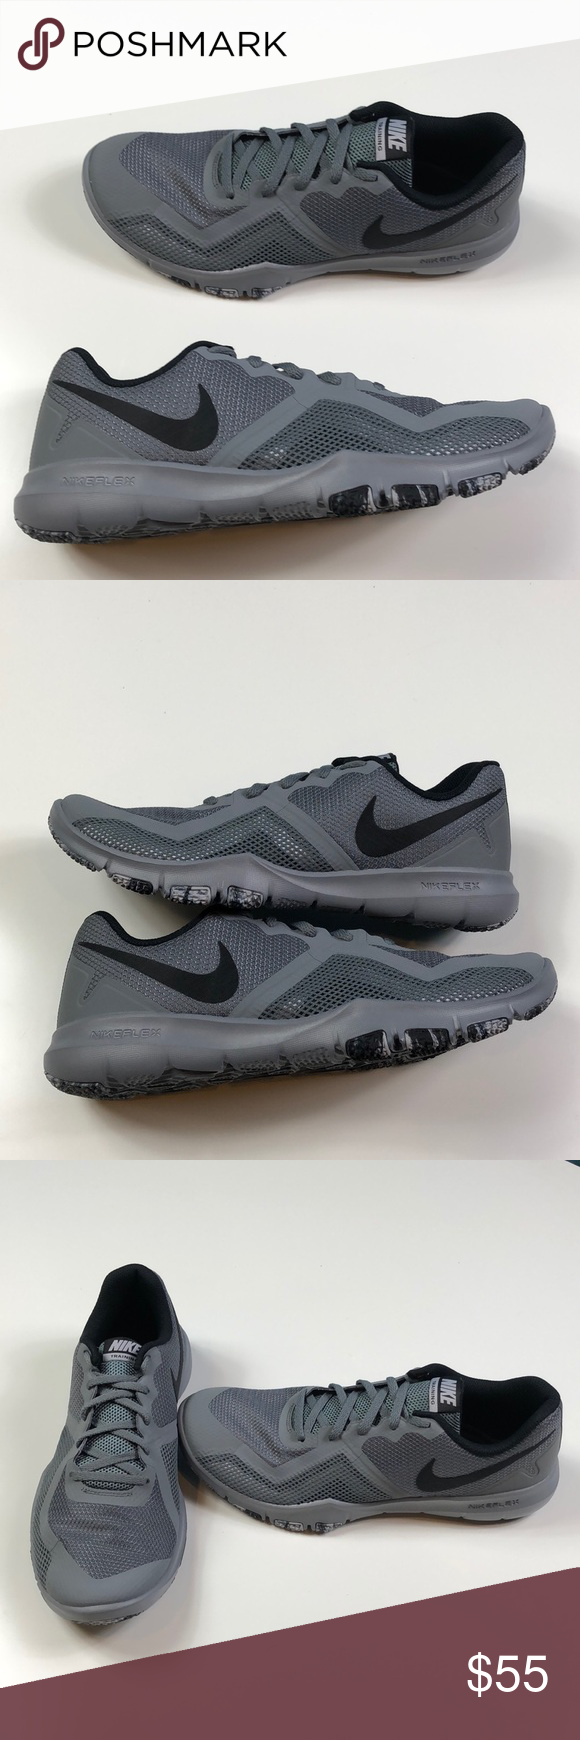 64e96d7c663b NWT men s Nike flex control II cross training New in box. NWT men s Nike  flex